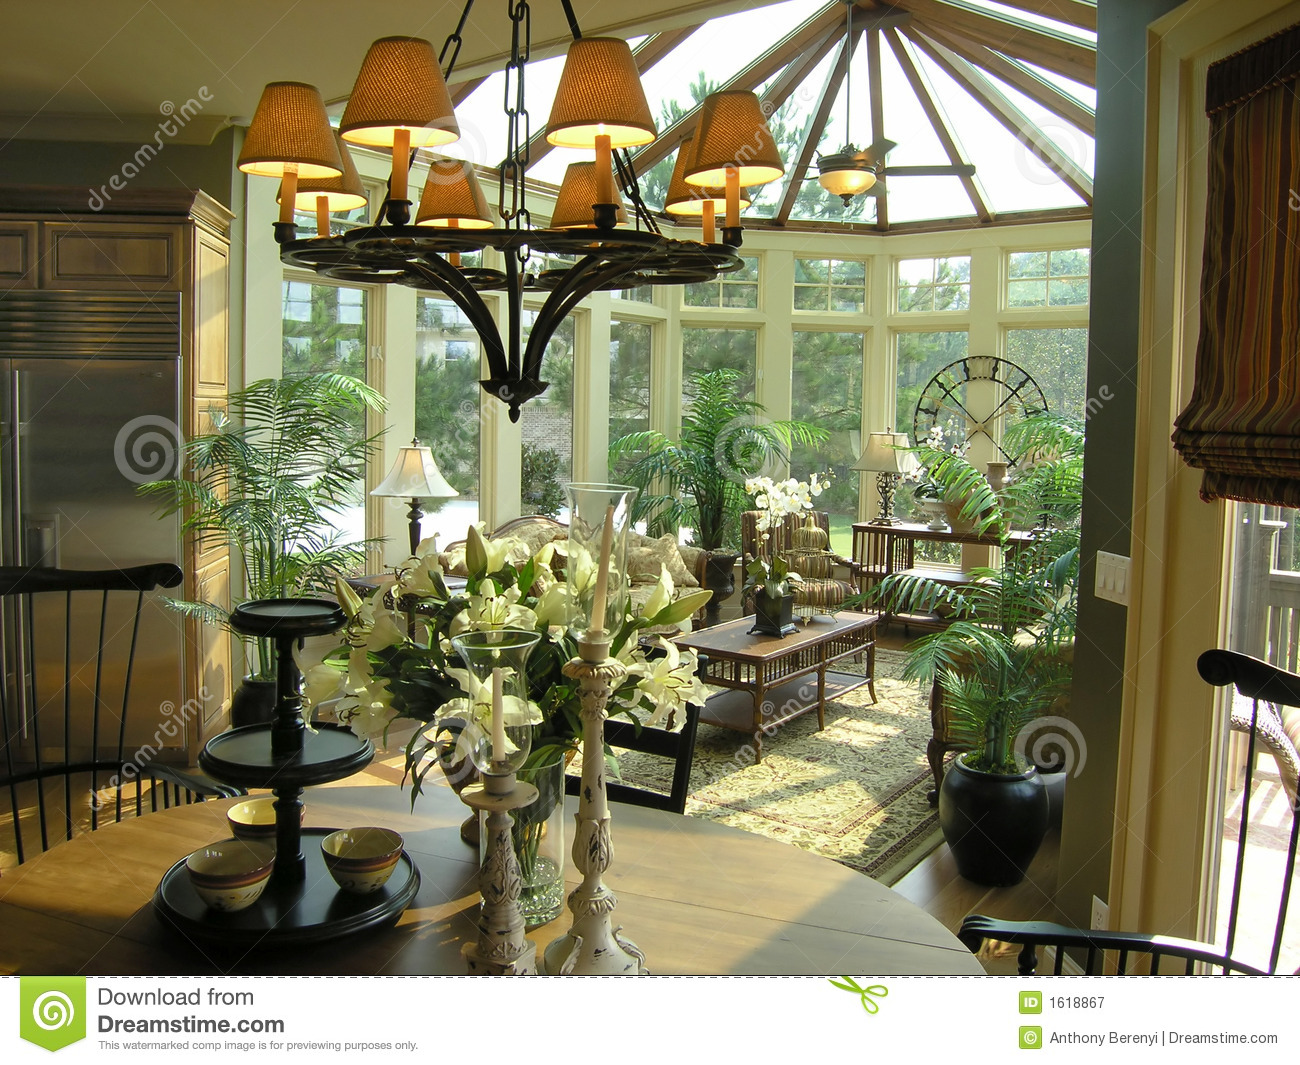 Luxury 21 Sun Room Stock Image Of Pretty Inside 1618867